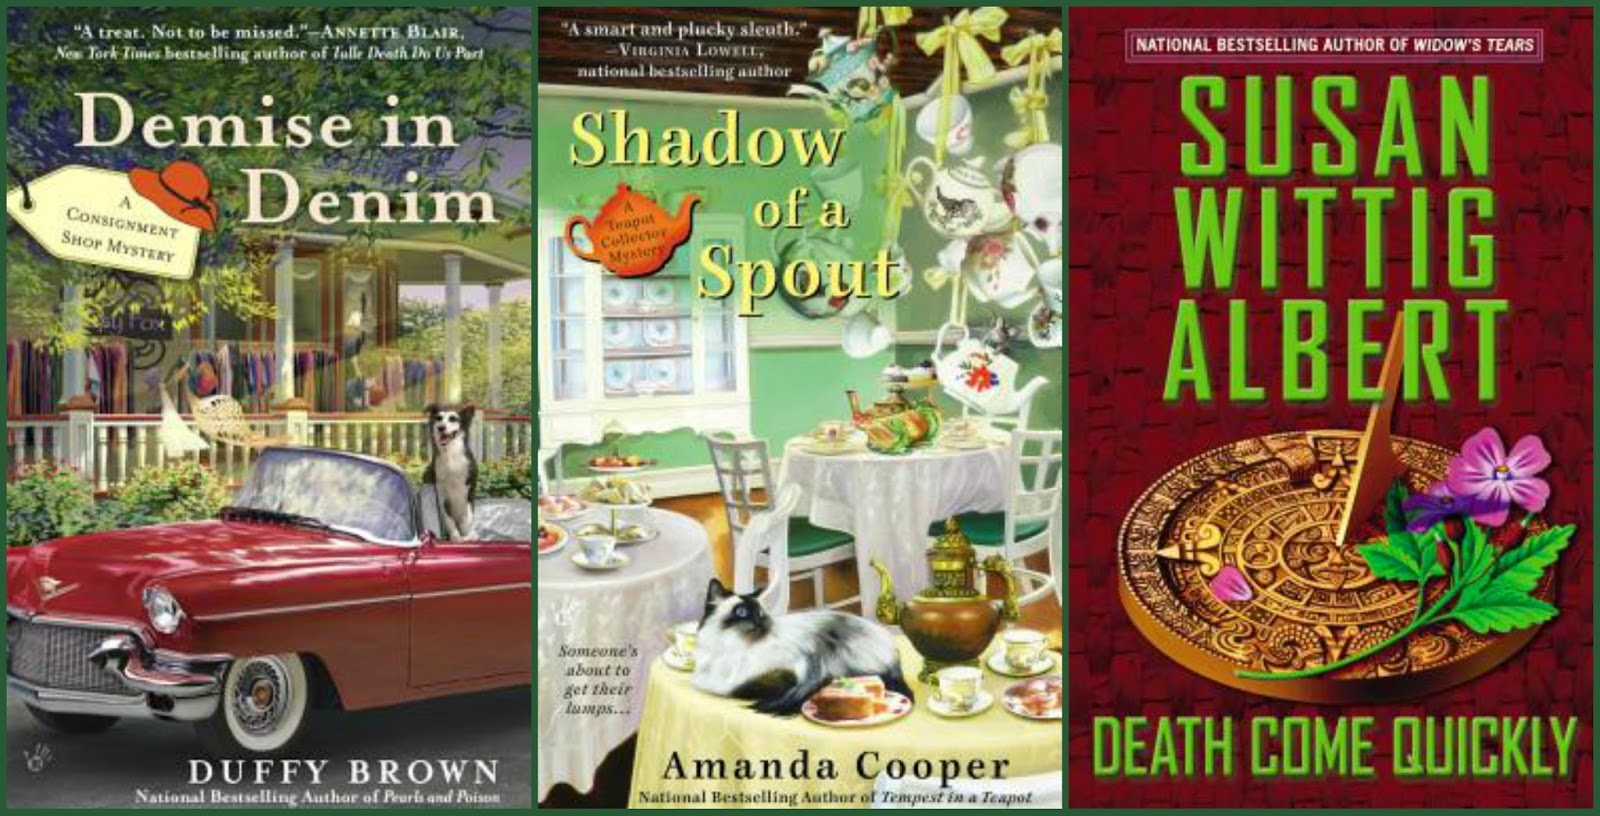 Demise in Denim by Duffy Brown, Shadow of a Spout by Amanda Cooper, Death Come Quickly by Susan Wittig Albert